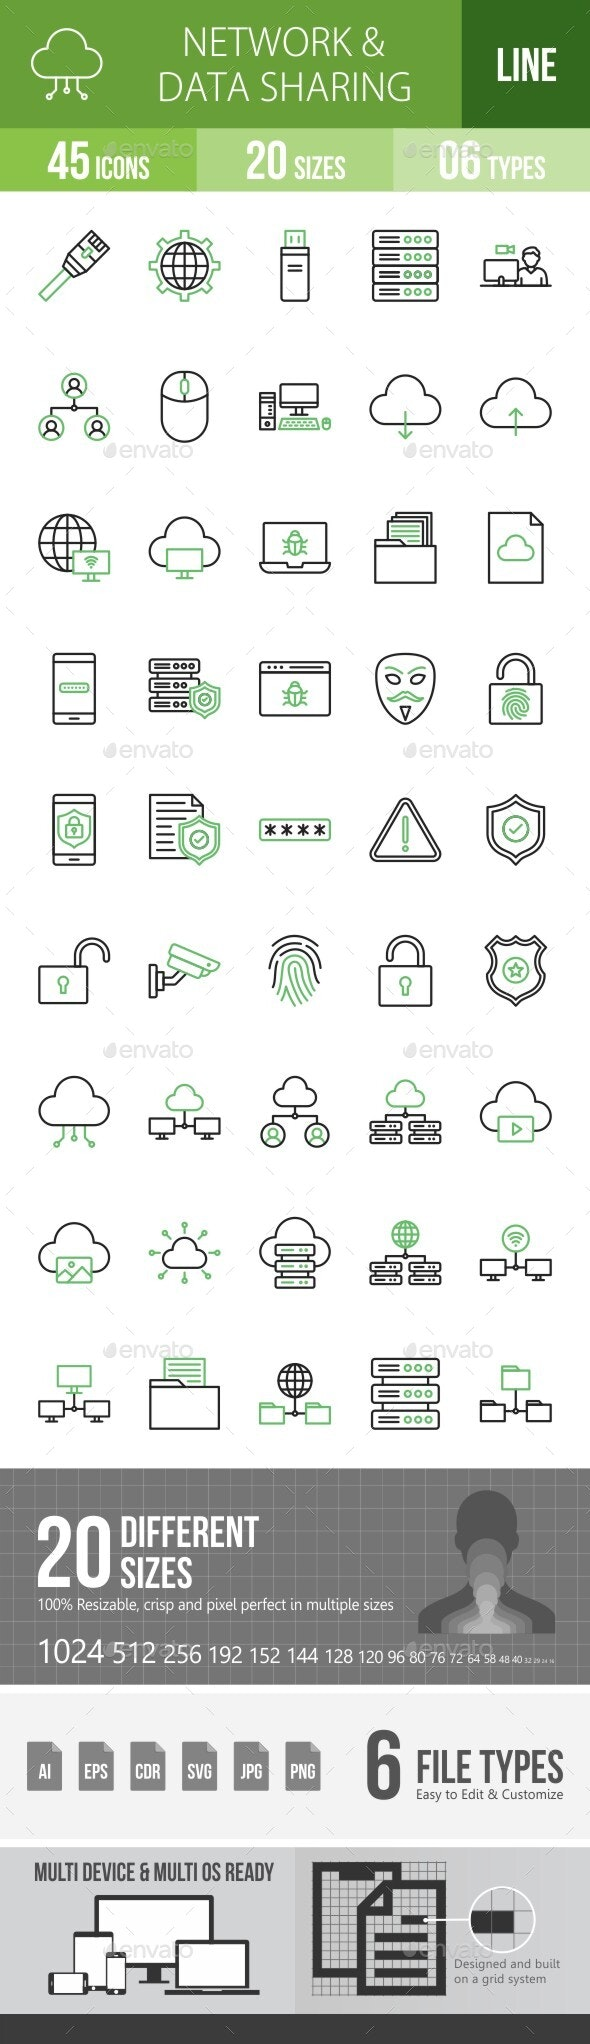 Network and Data Sharing Line Green & Black Icons - Icons